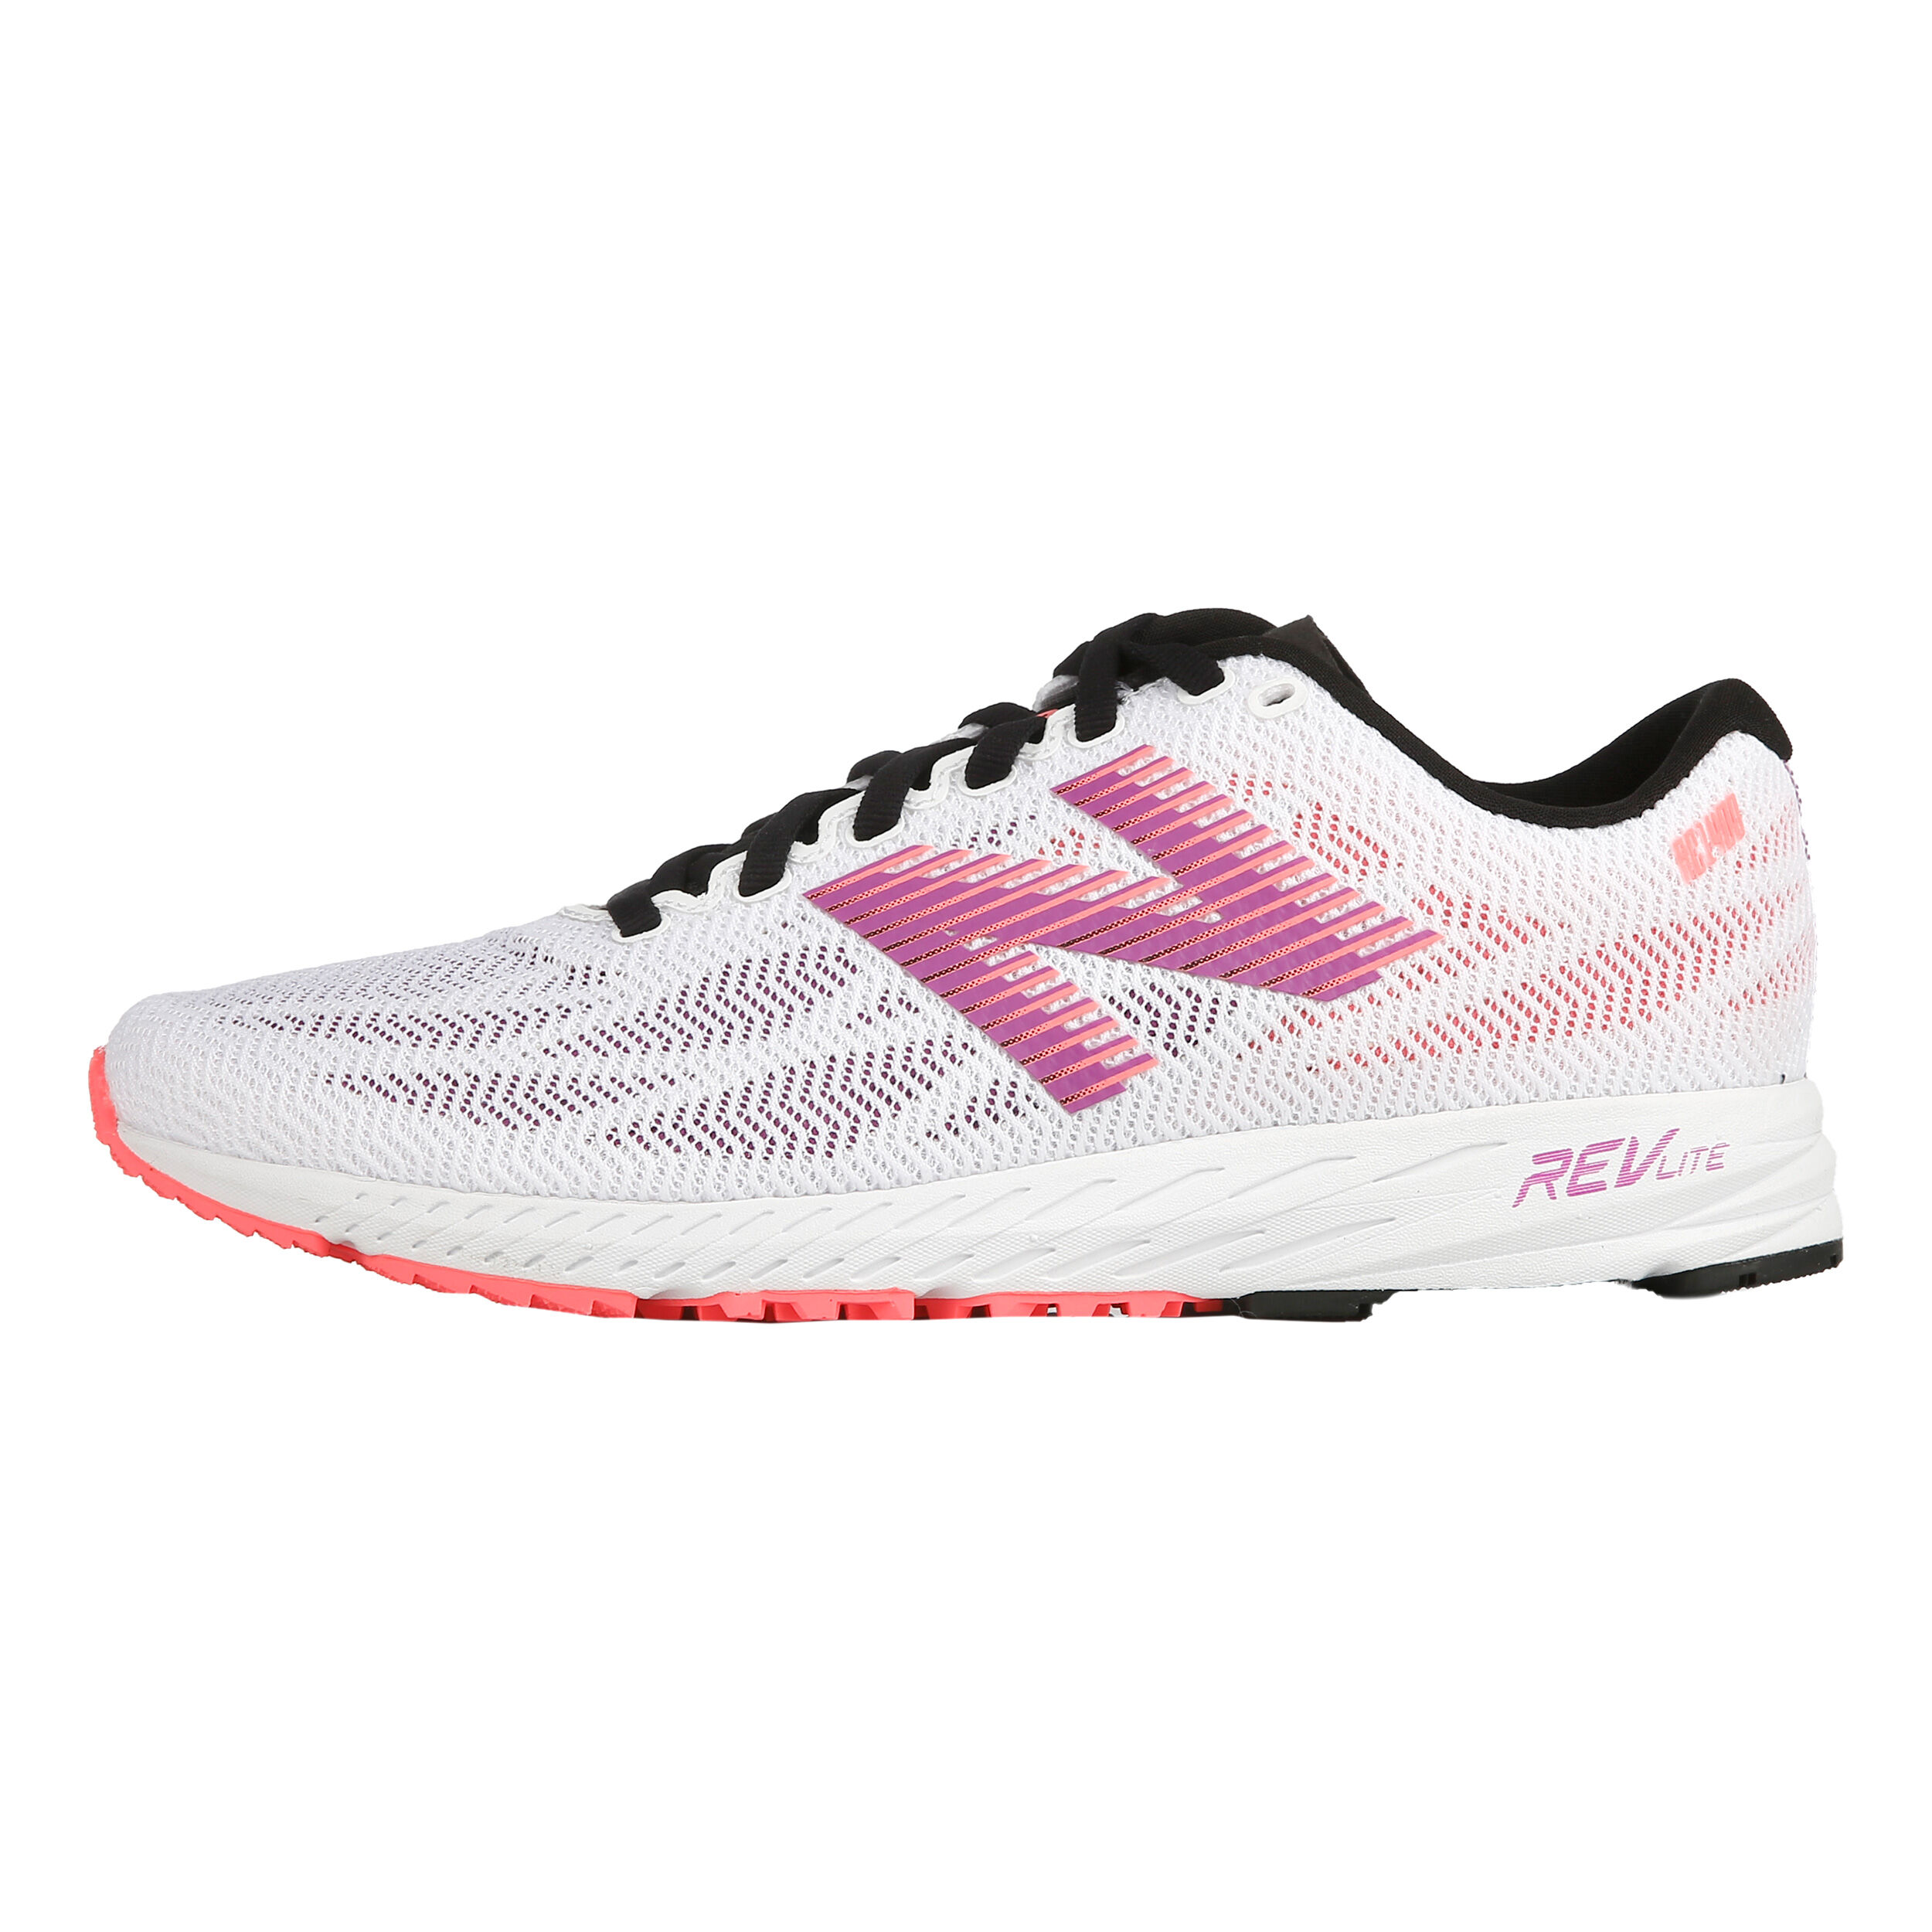 buy New Balance 1400 V6 Competition Running Shoe Women ...